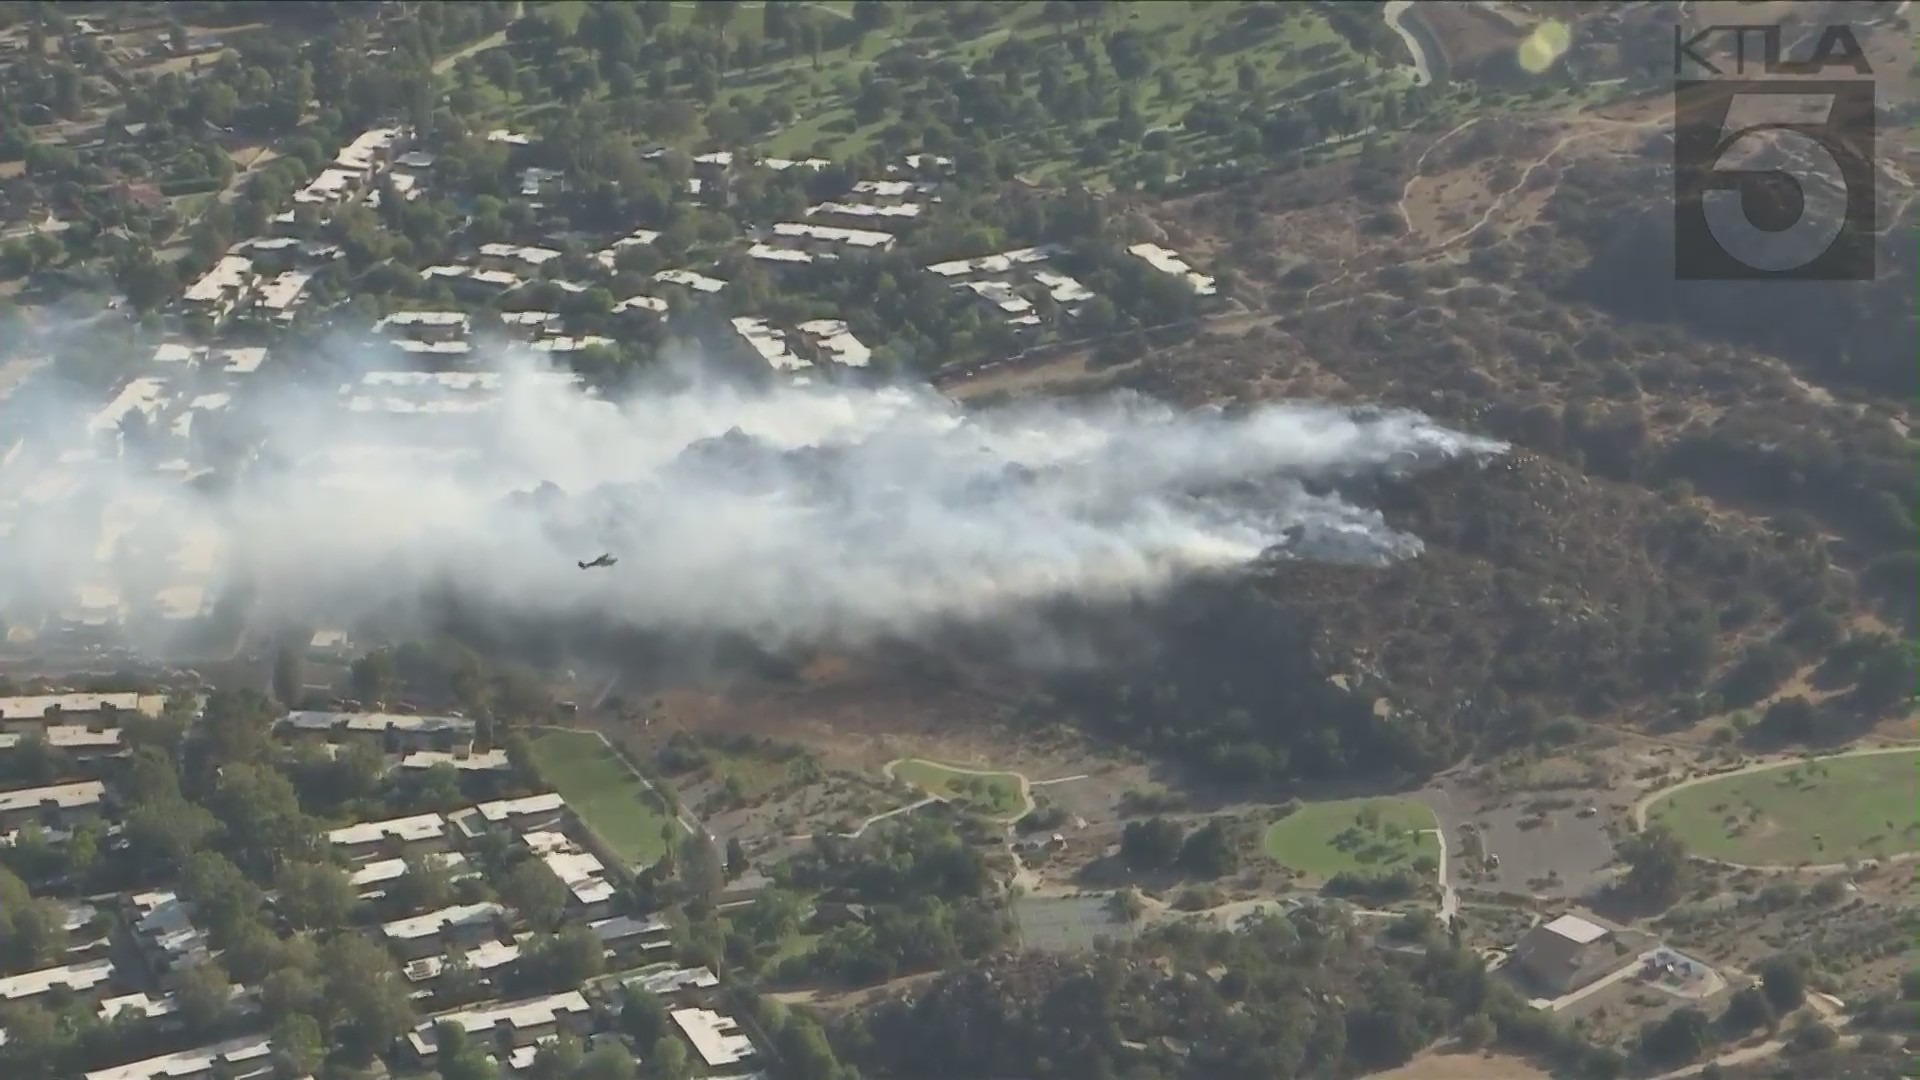 Smoke rises from a hillside in Chatsworth while crews battle a fire on Sept. 22, 2021. (KTLA)